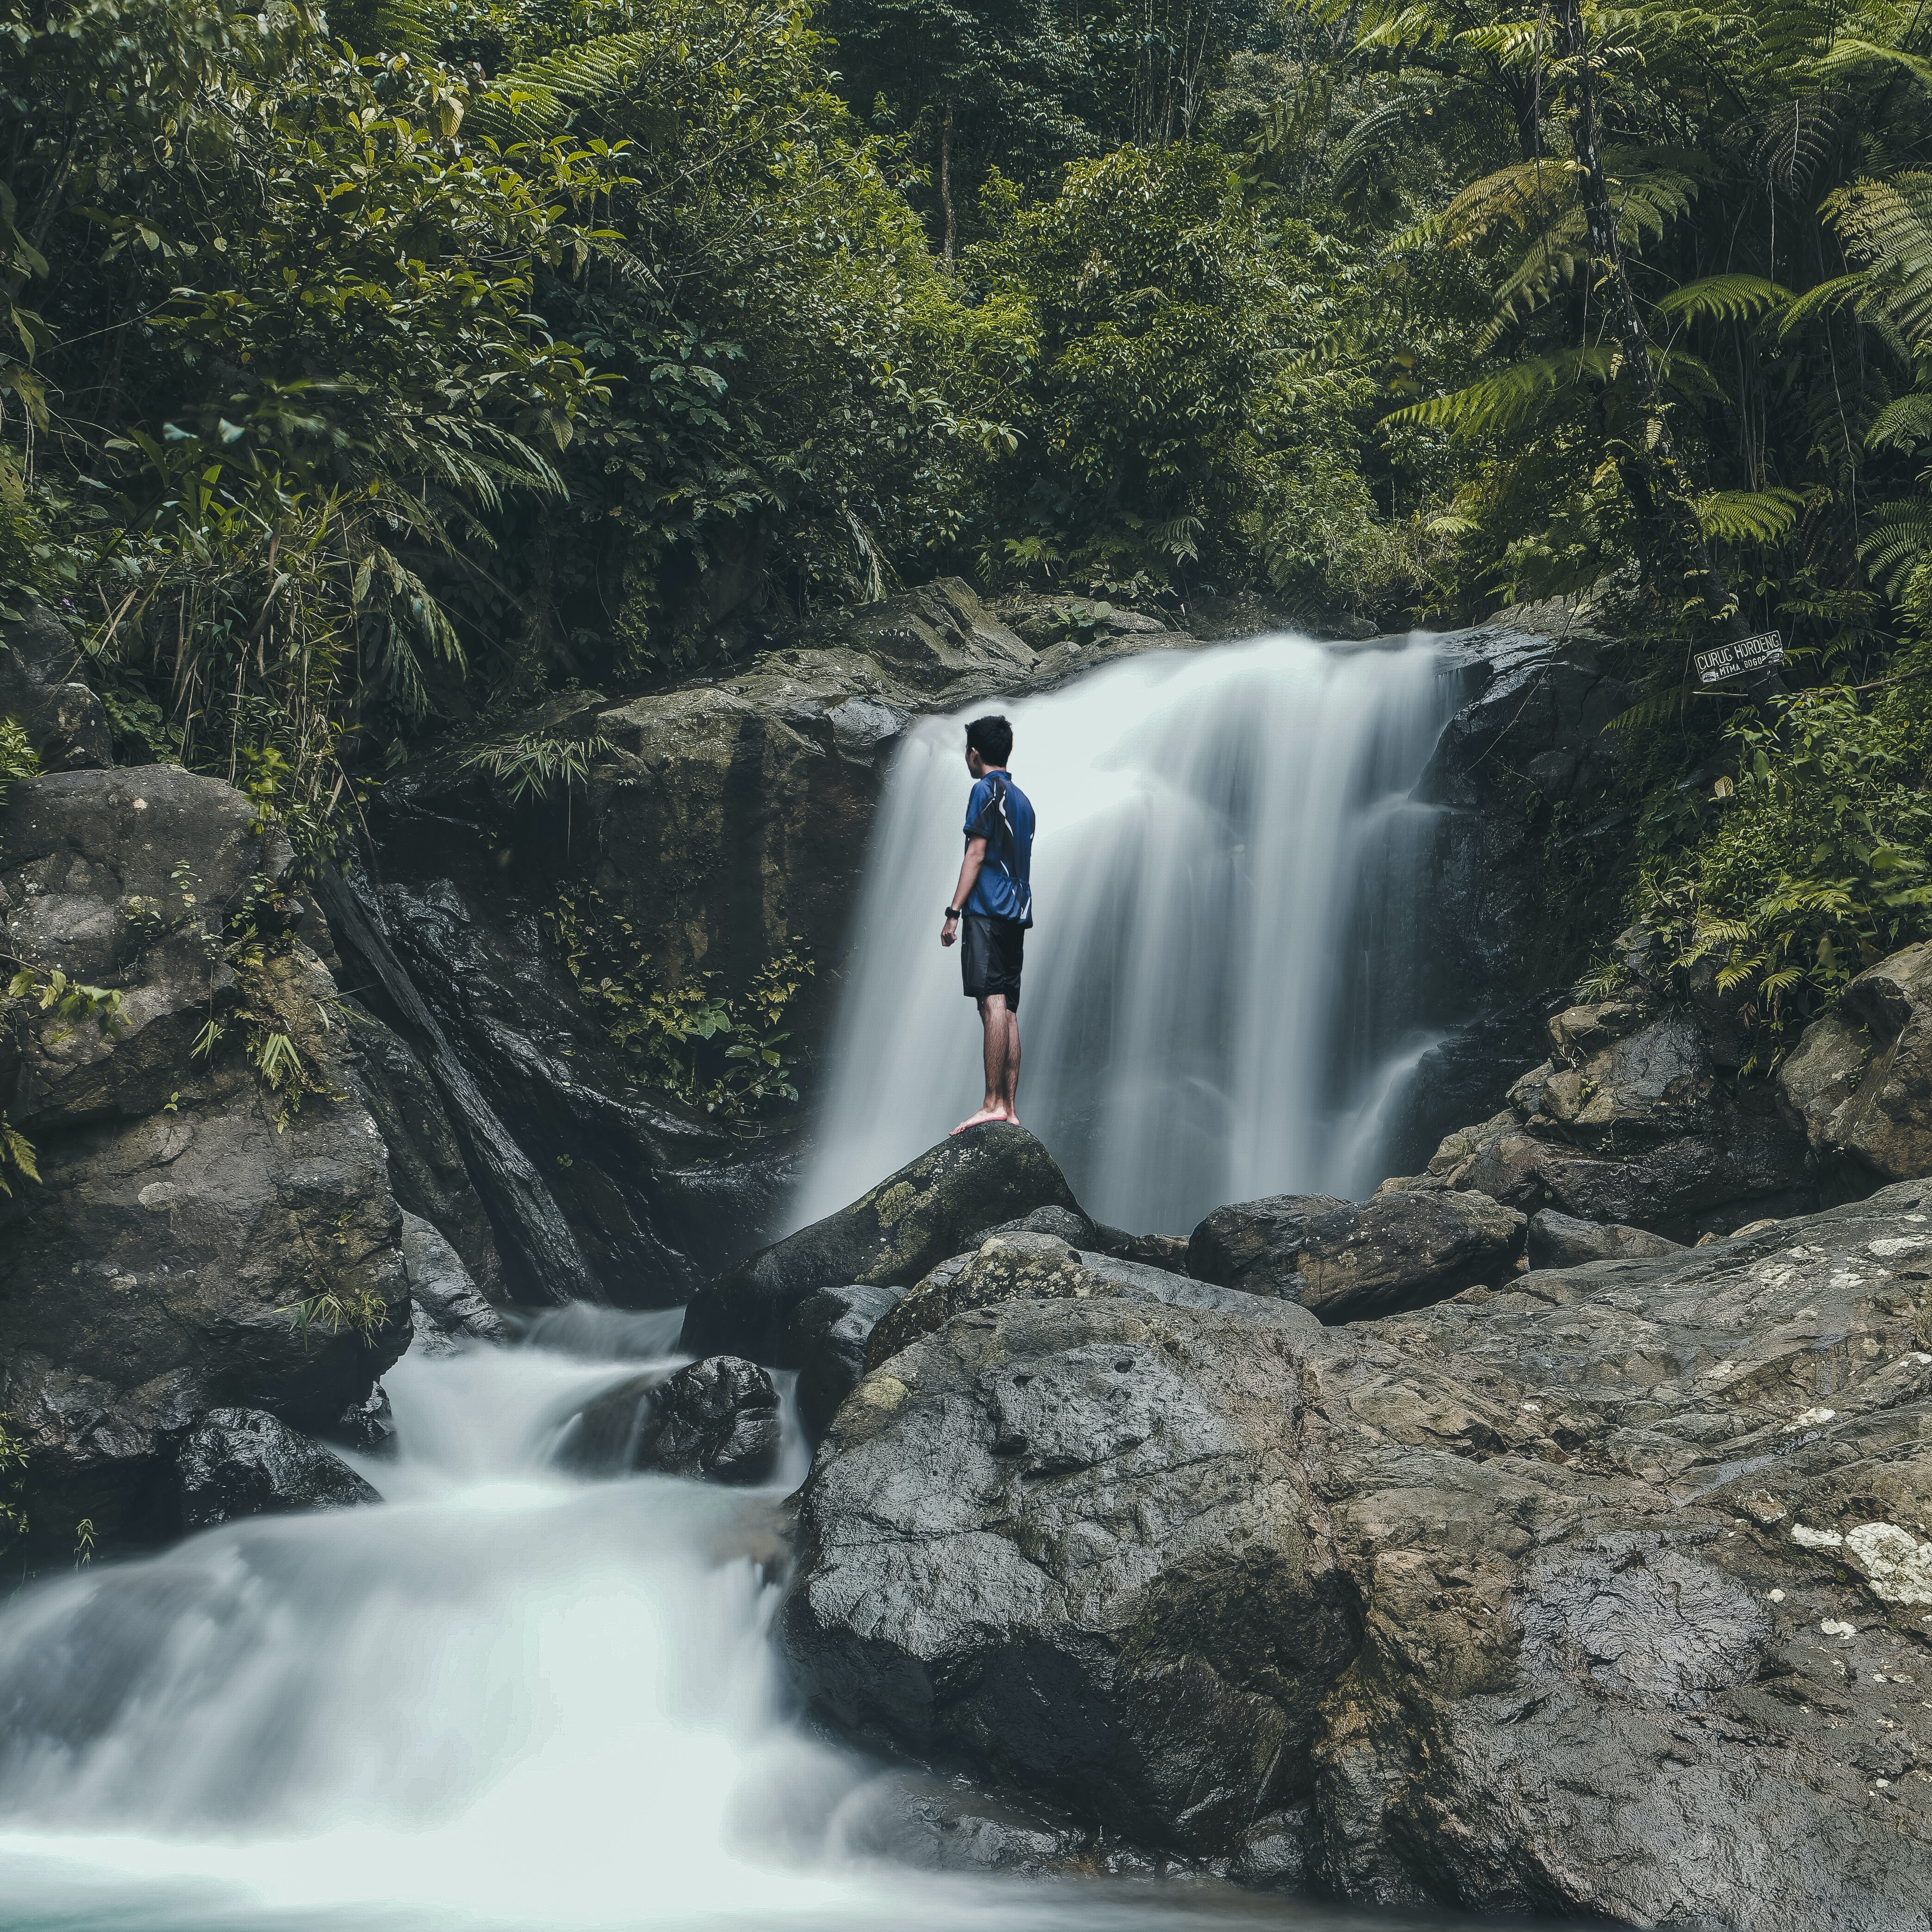 man standing on rocks with waterfalls background